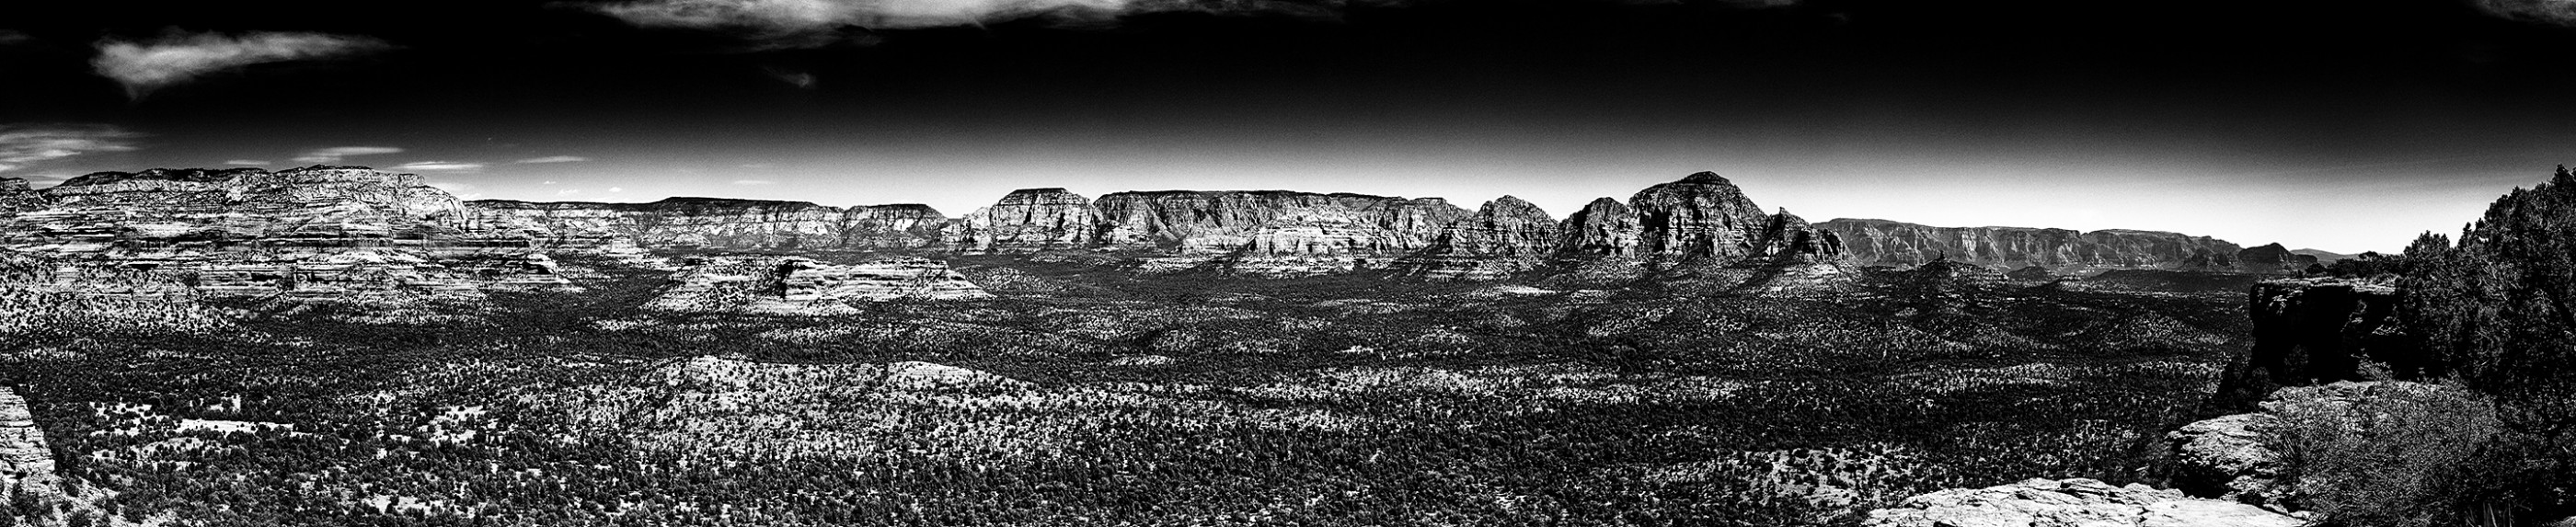 sedona-panormic-bnw-landscape-mountains-ash-newell